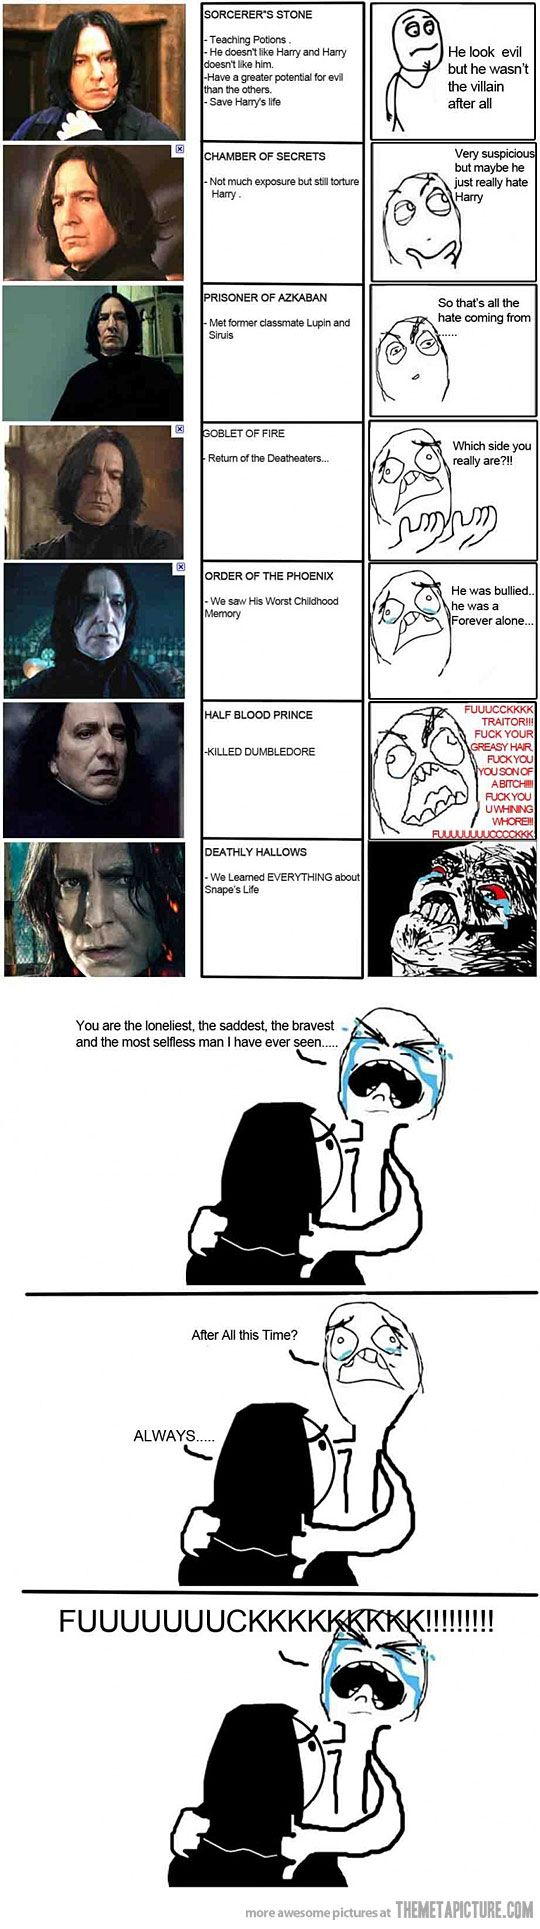 NO. SICK OF THIS. I LOVED SNAPE EVEN WHEN EVERYONE THOUGHT HE WAS EVIL. SNAPE IS AWESOME. ALAN RICKMAN IS AWESOME. PEOPLE WHO JUST NOW STARTED LOVING SNAPE- SHUTUP. THANK YOU. Have a wonderful day